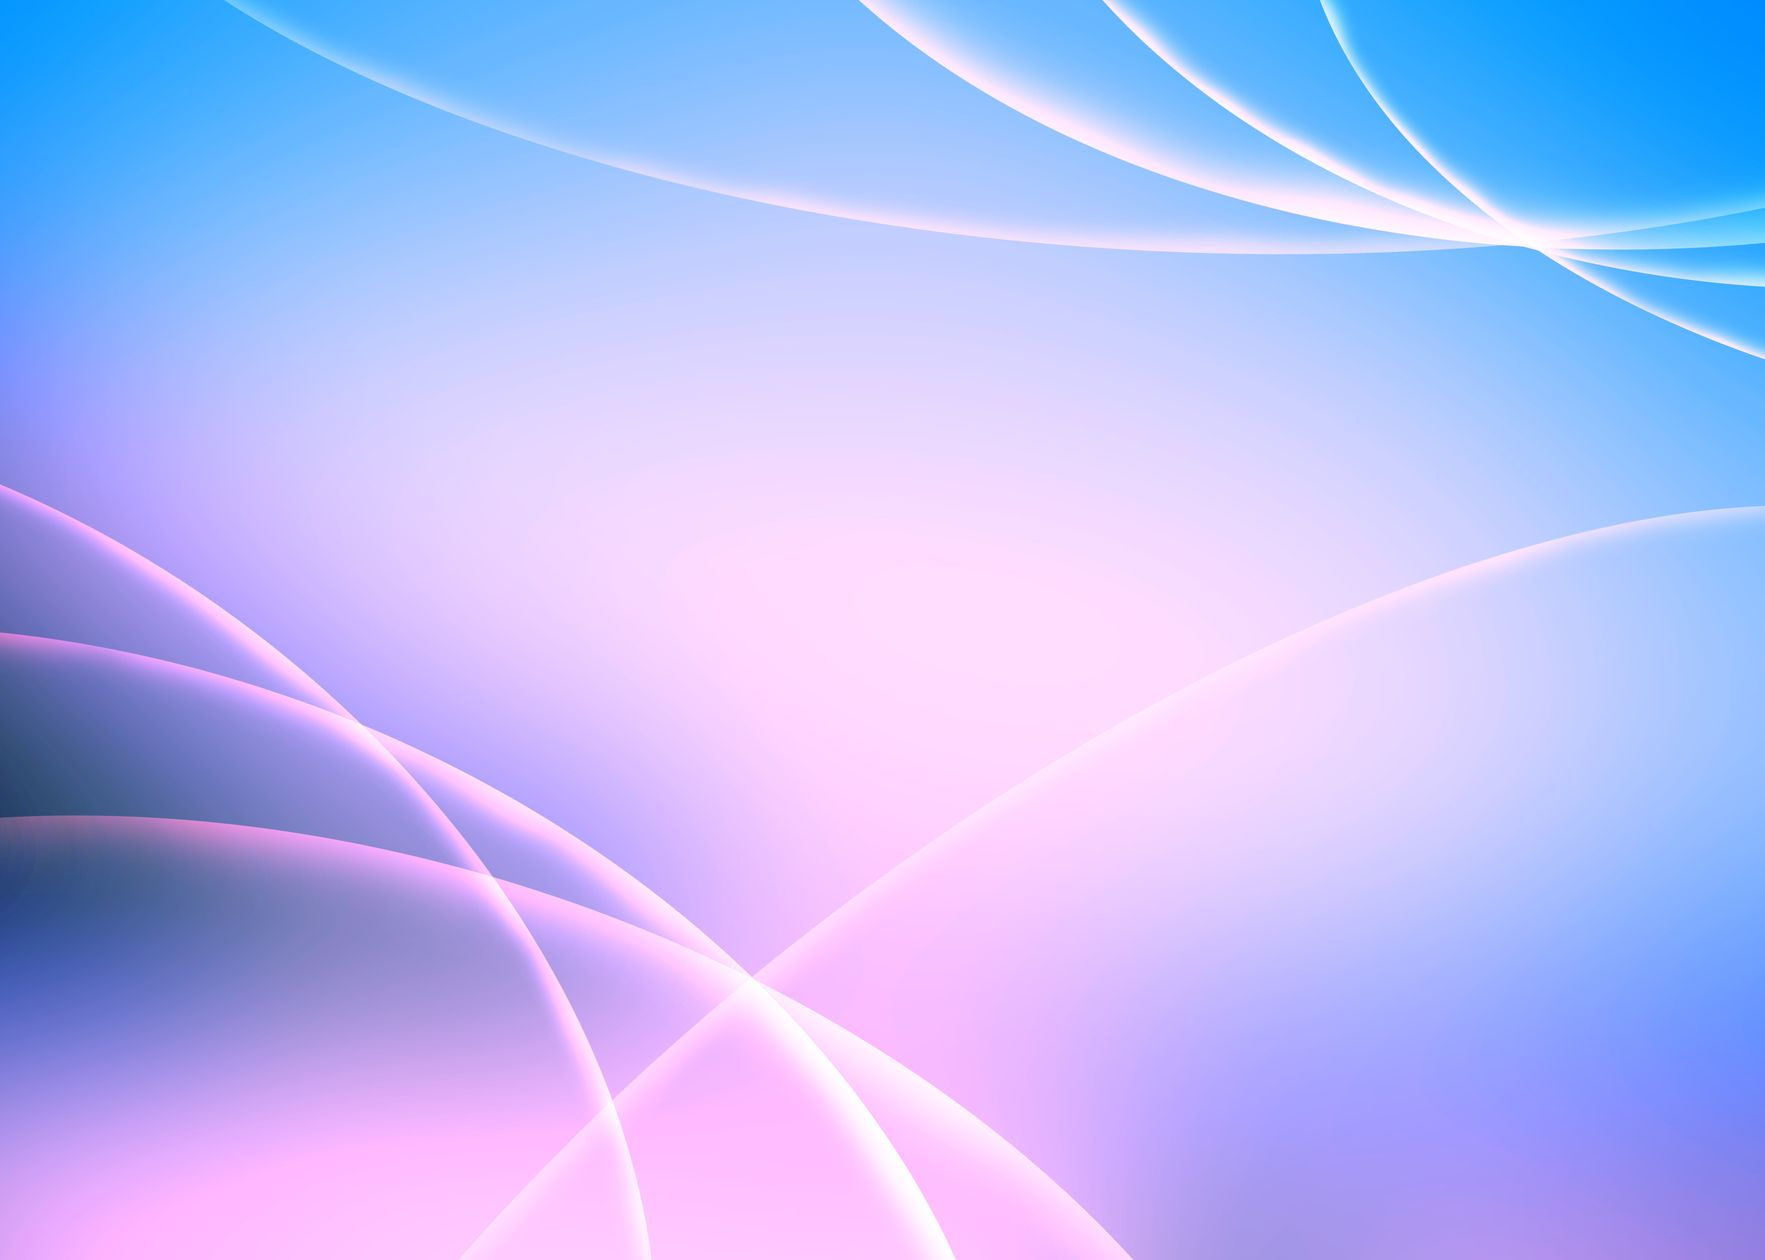 Blue Lines Abstract Ppt Background Free Download #851